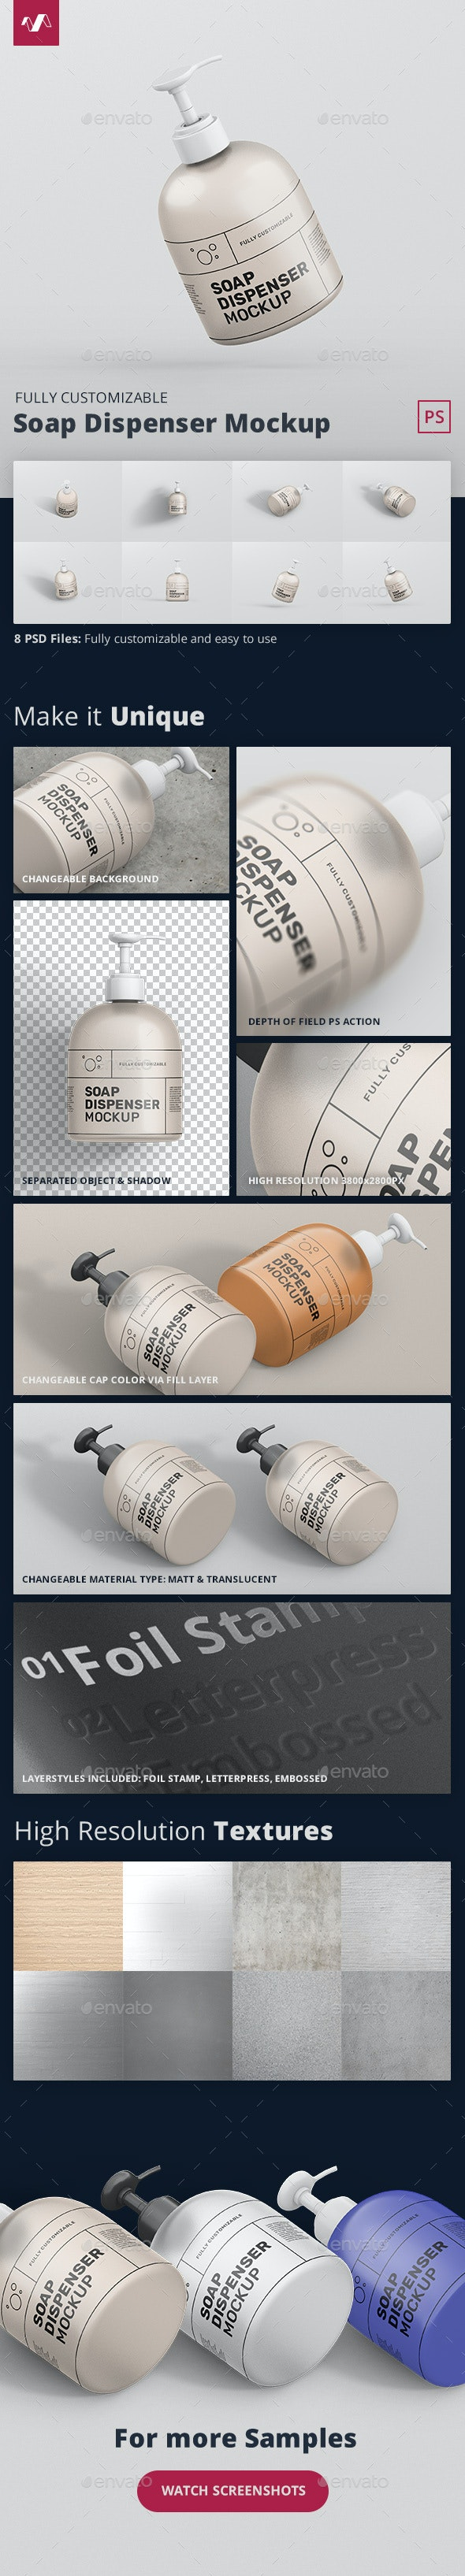 Soap Dispenser Mockup - Miscellaneous Packaging